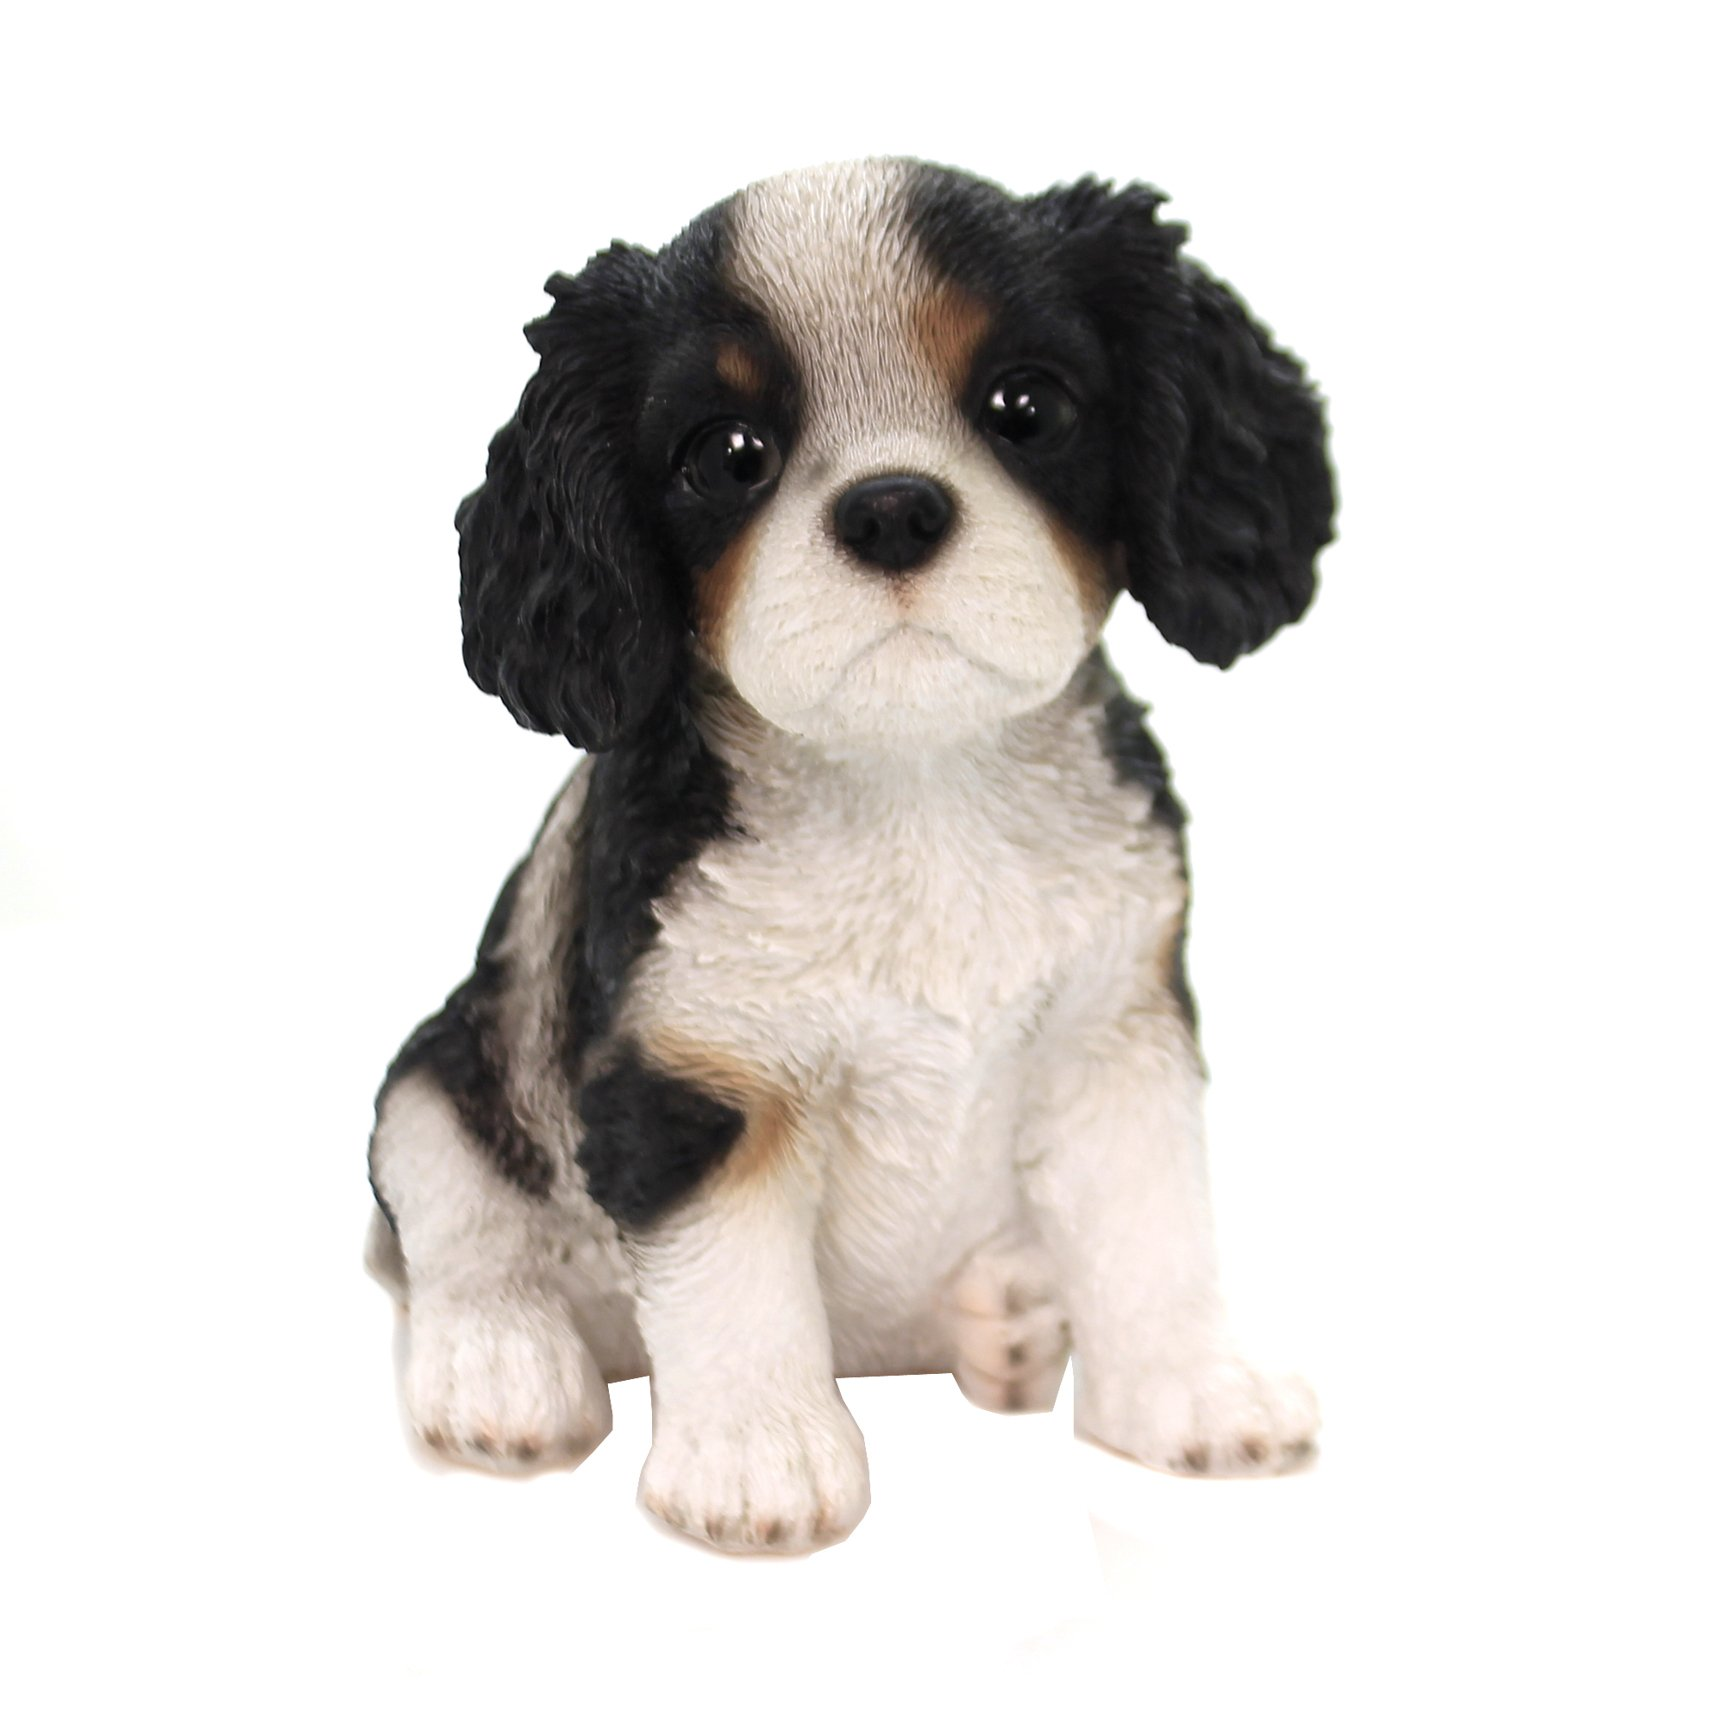 TINY ONES DOG Figurine Statue Pet Lovers Gift Resin CAVALIER black white